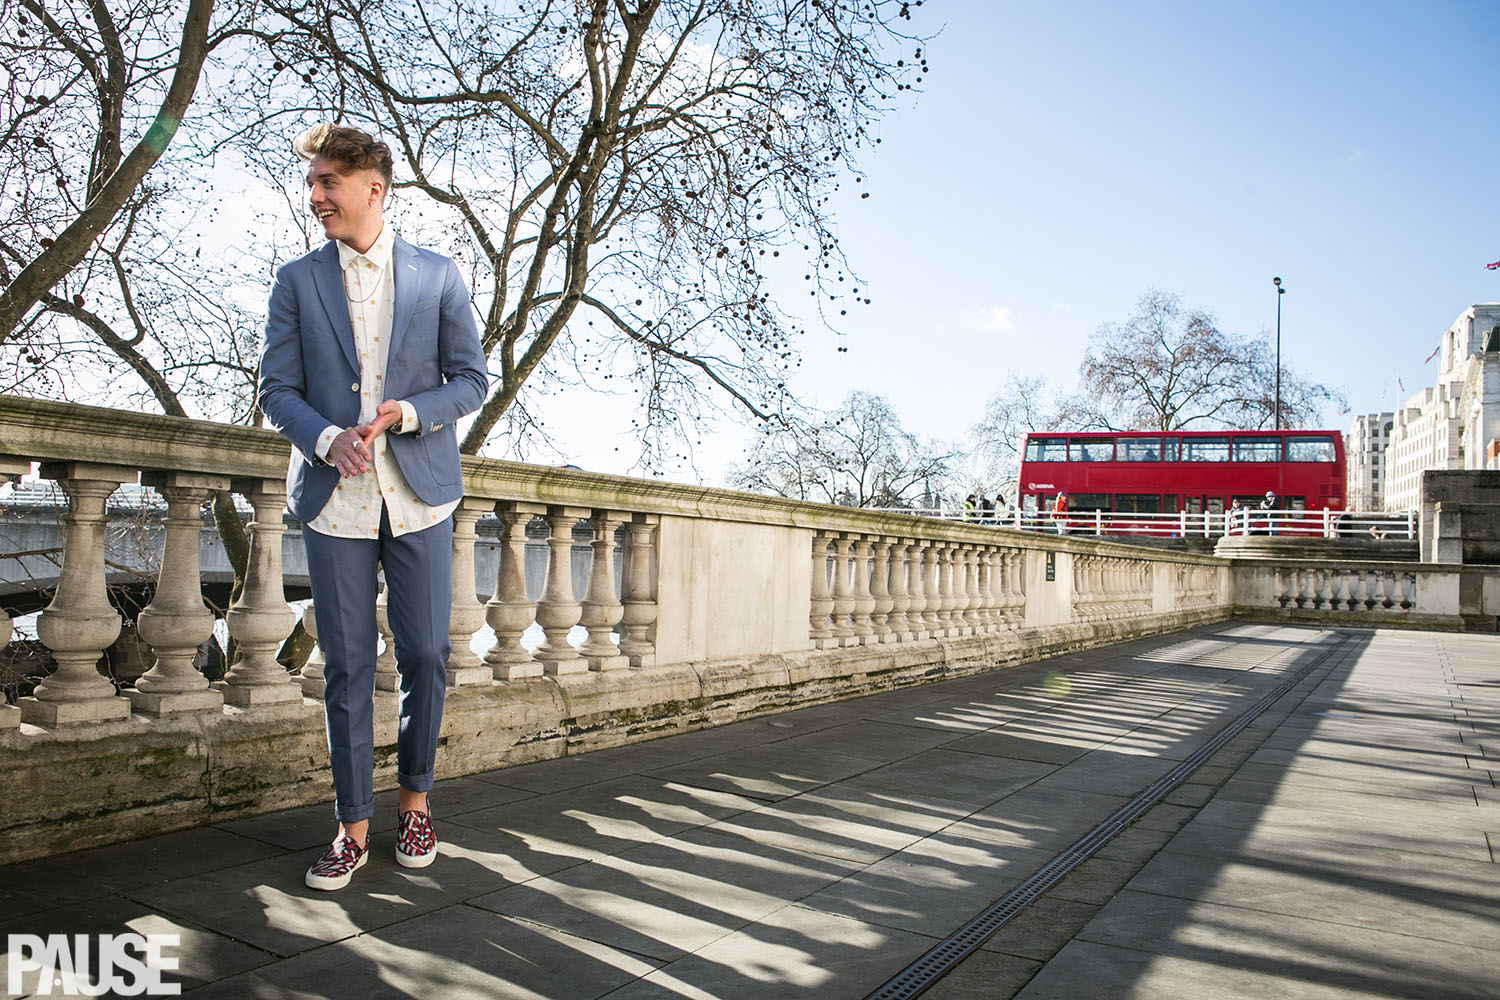 Interview: PAUSE Meets Roman Kemp